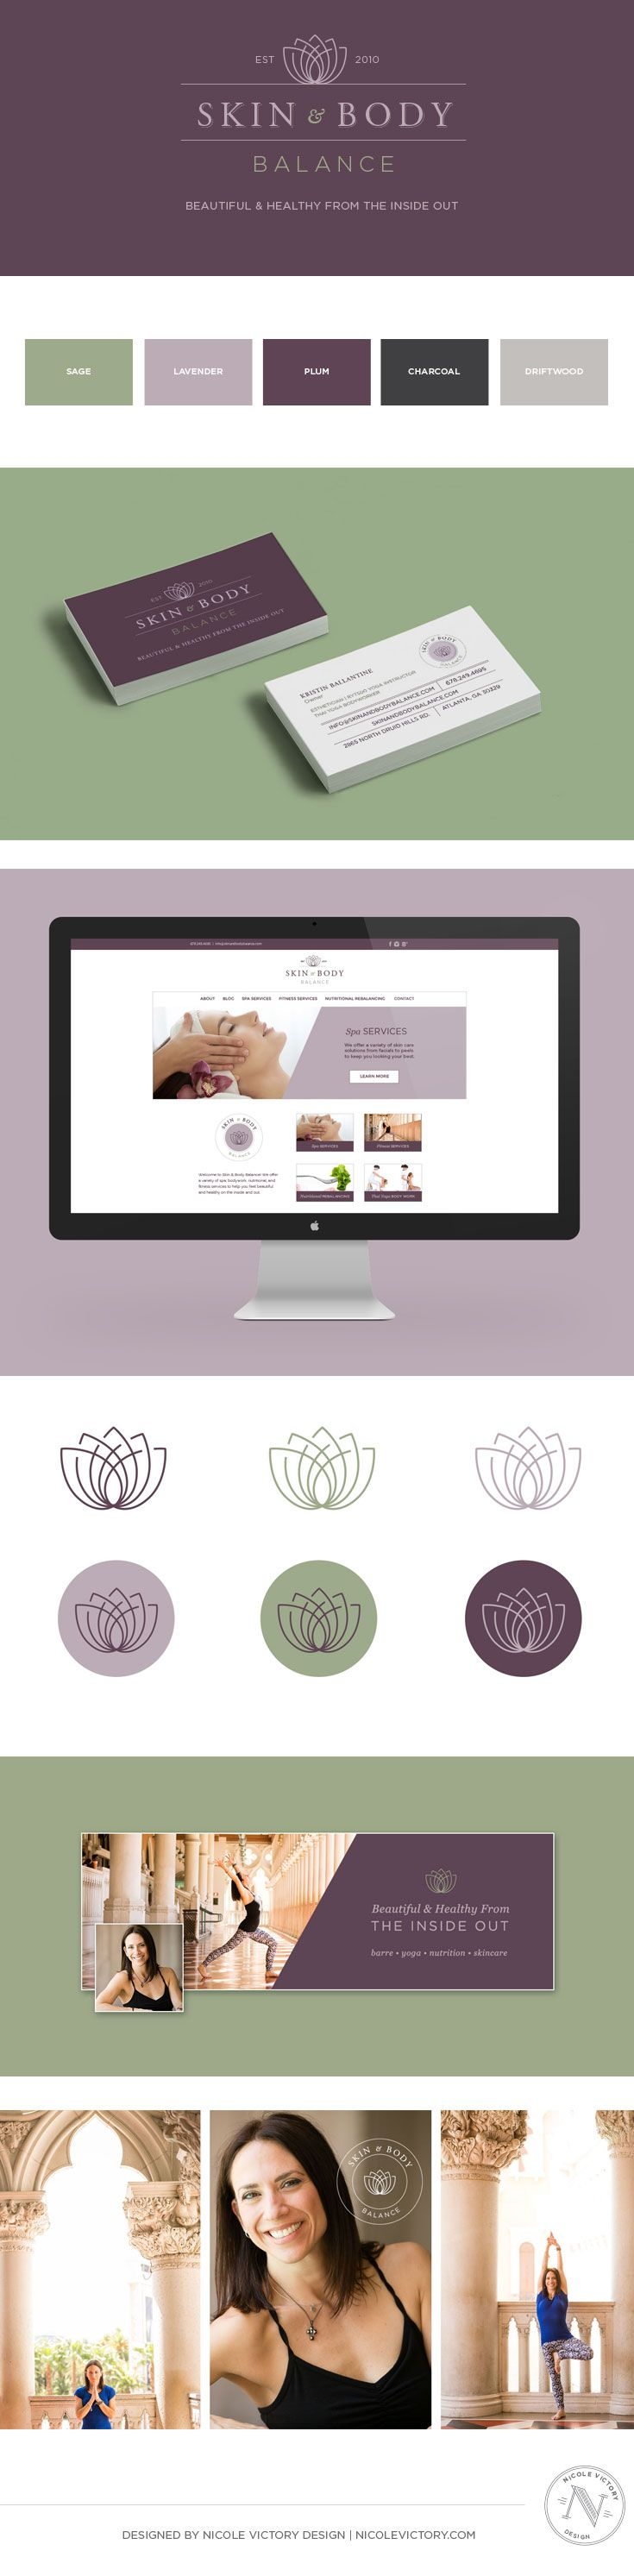 Re-brand for Skin and Body Balance, a spa specializing in skin care services, thai yoga body work, and yoga, barre, and pilates classes in Atlanta, GA. Spa branding, logo design, web design. Fitness services branding, logo design, web design